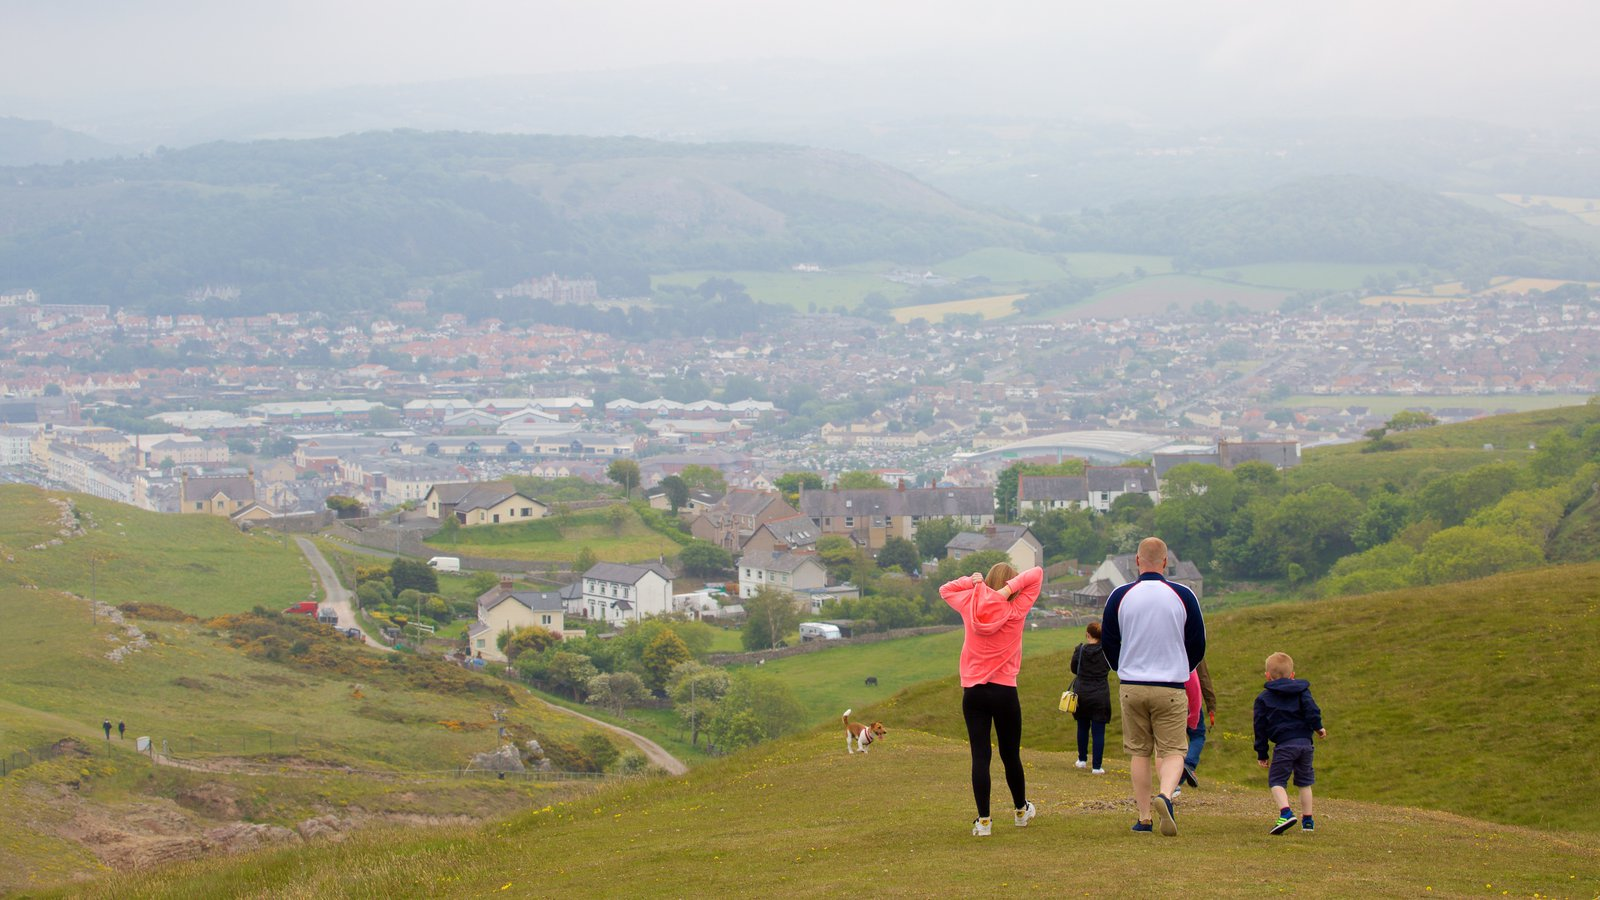 Great Orme which includes farmland and hiking or walking as well as a family